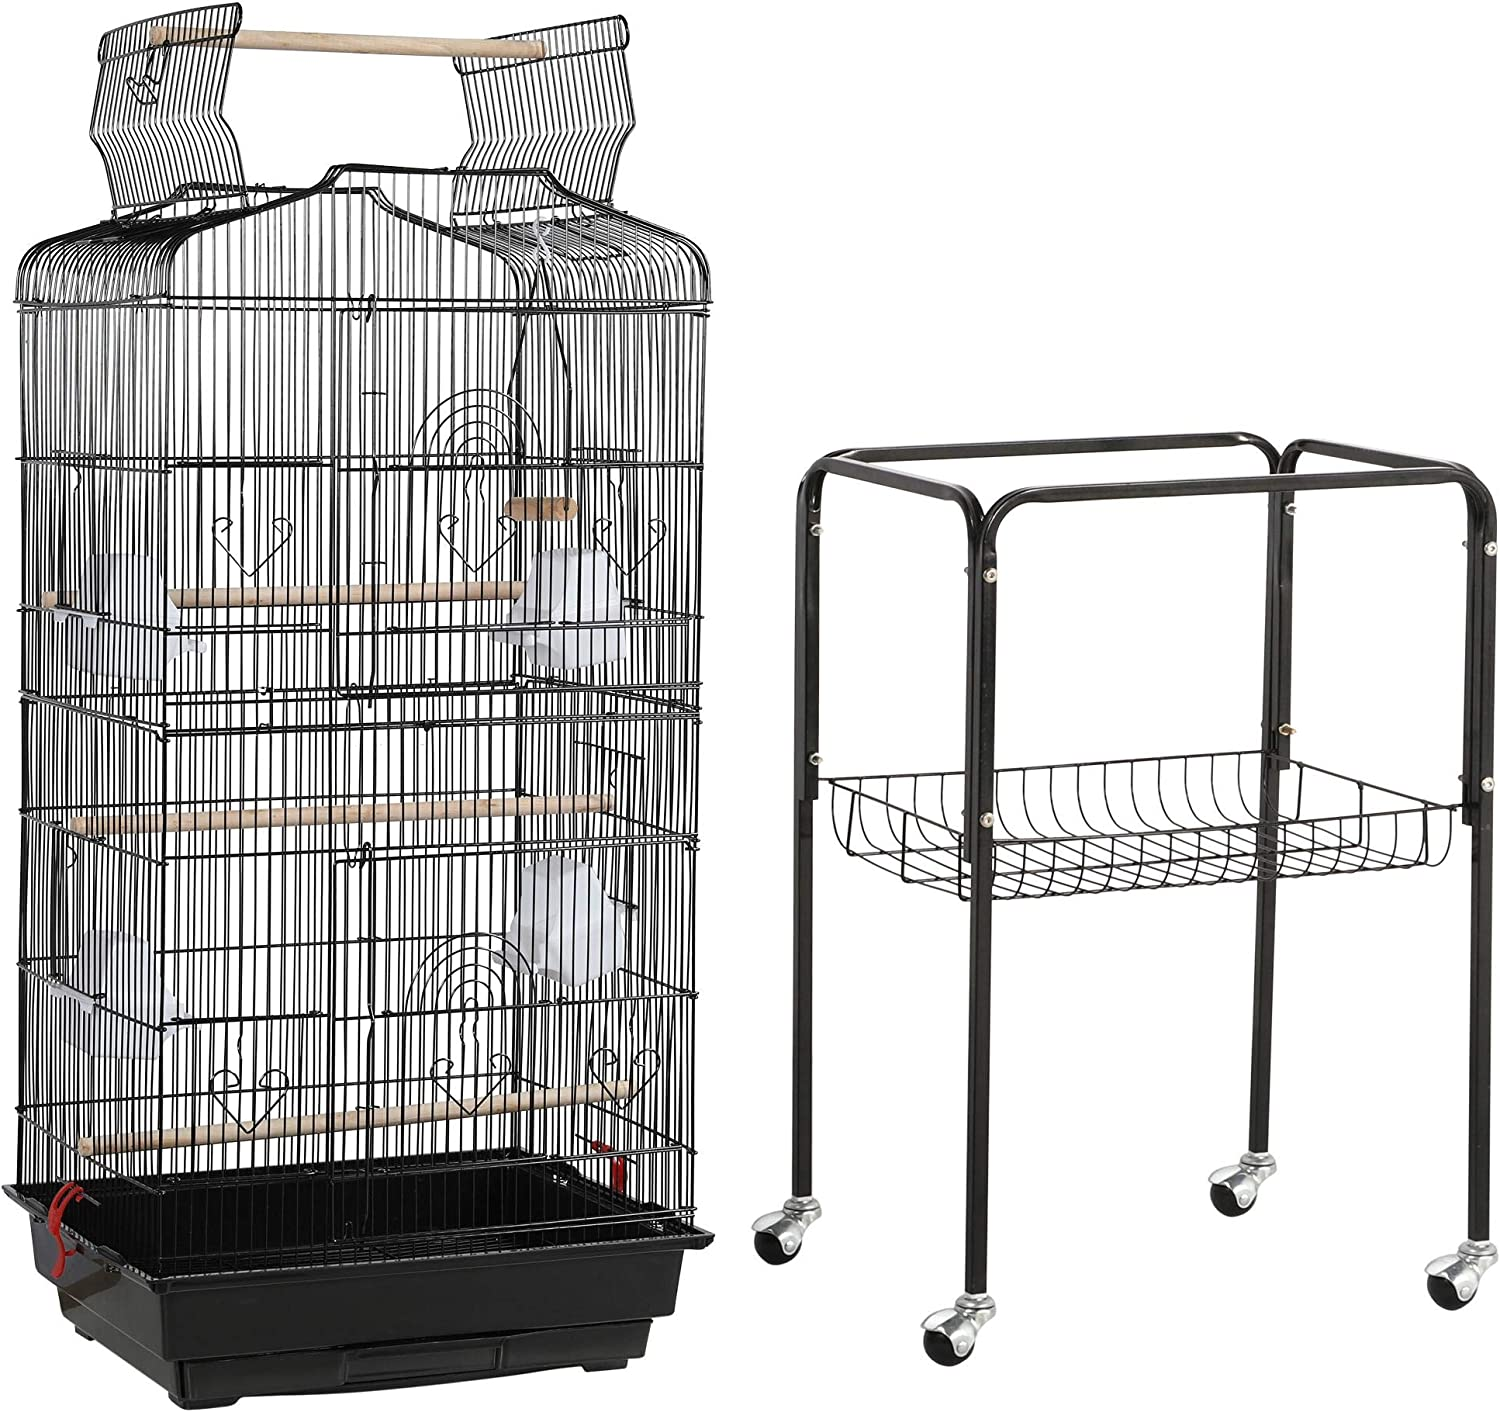 Topeakmart Open Play Top Large Parakeet Small Parrot Bird Cage